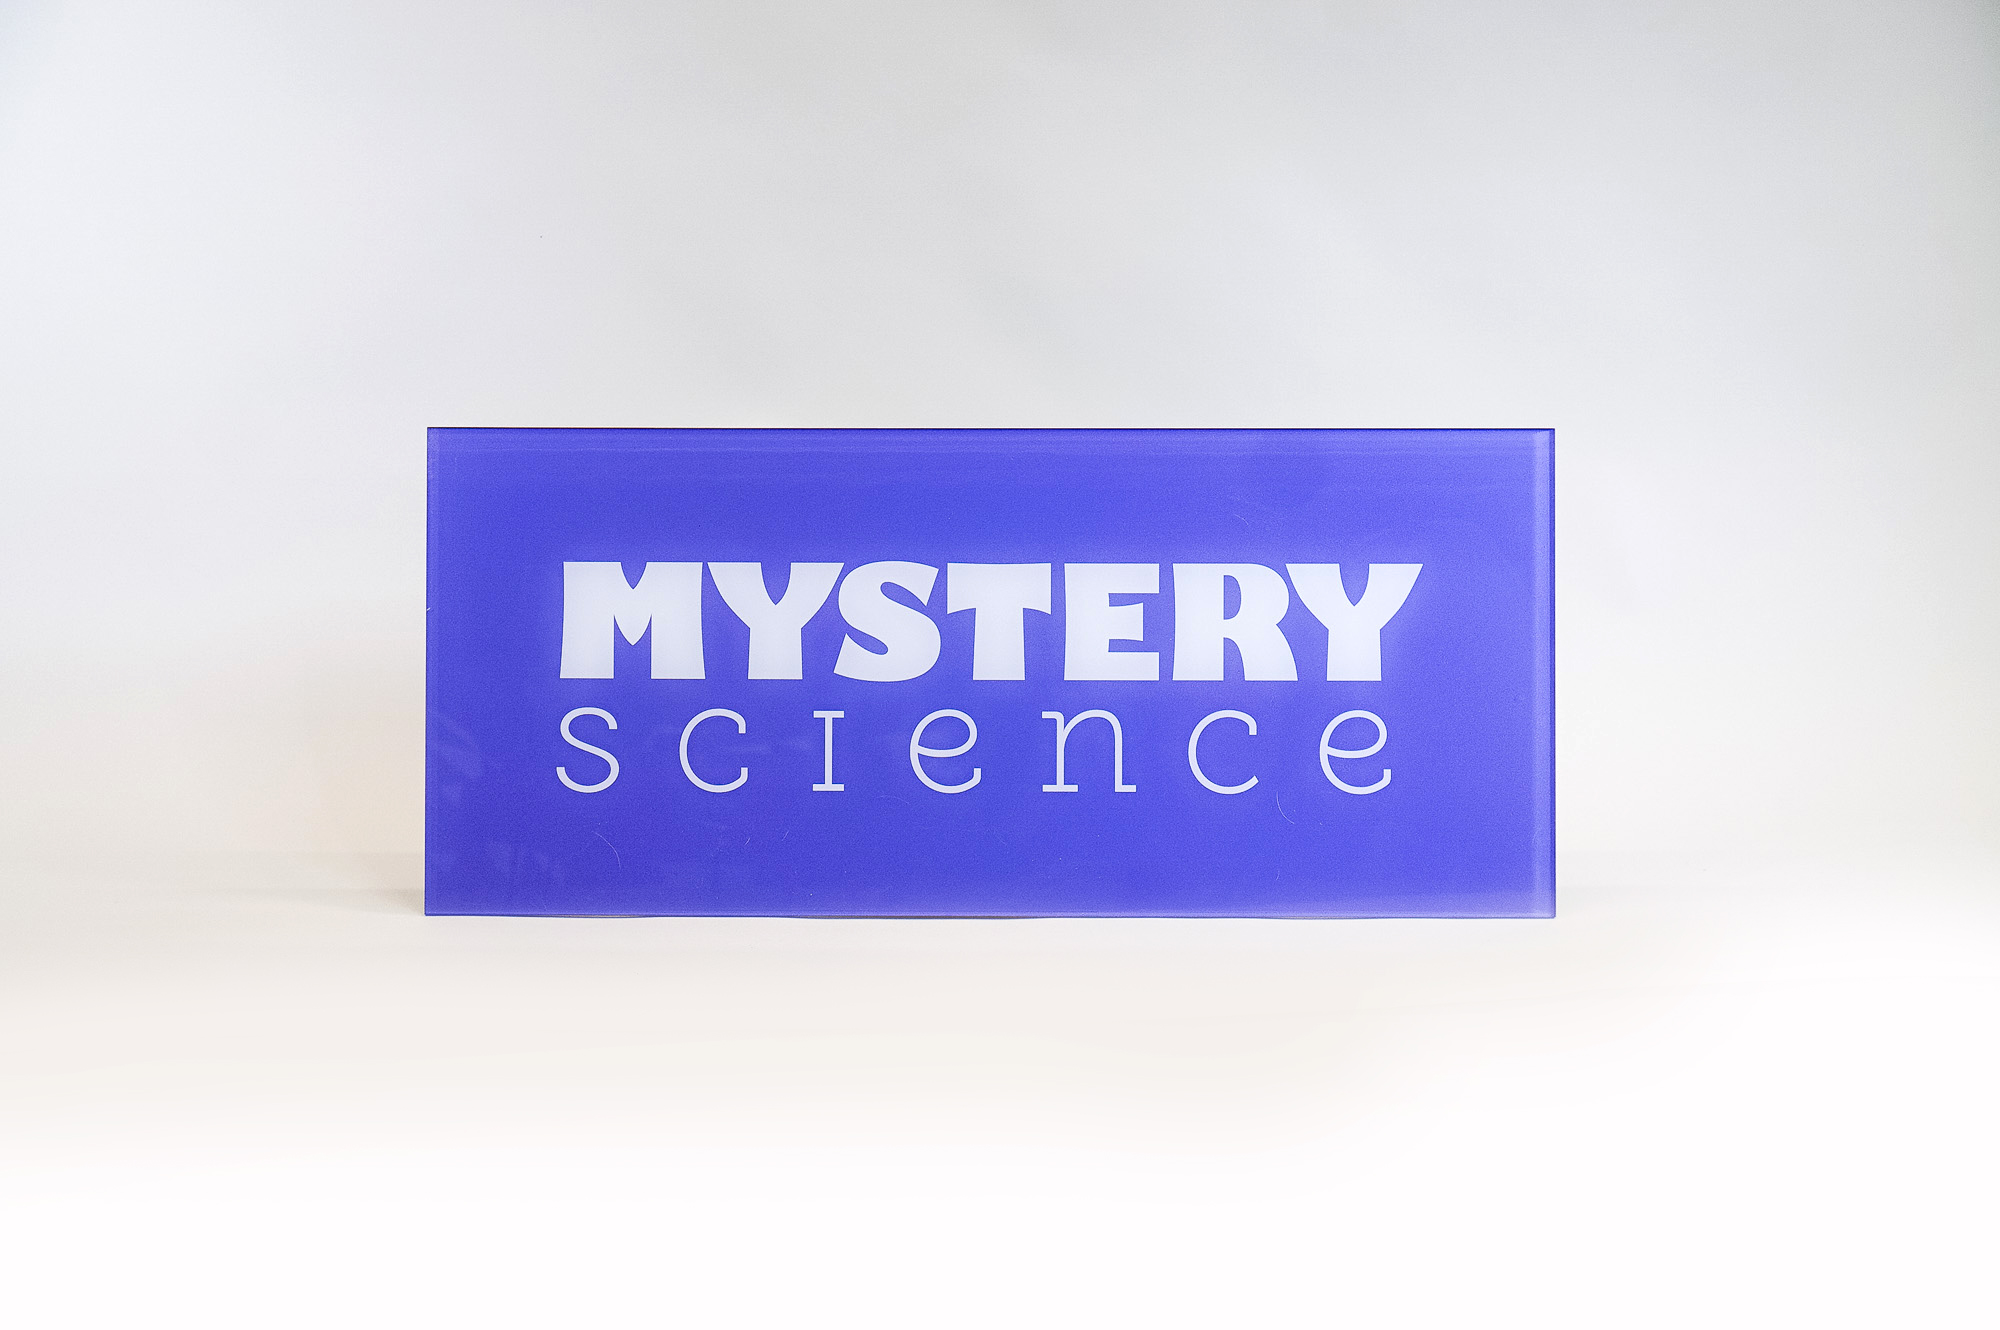 Glass-like colored panel sign for the Knotel designed Mystery Science lobby, a company that provides open-and-go lessons that inspire kids to love science.